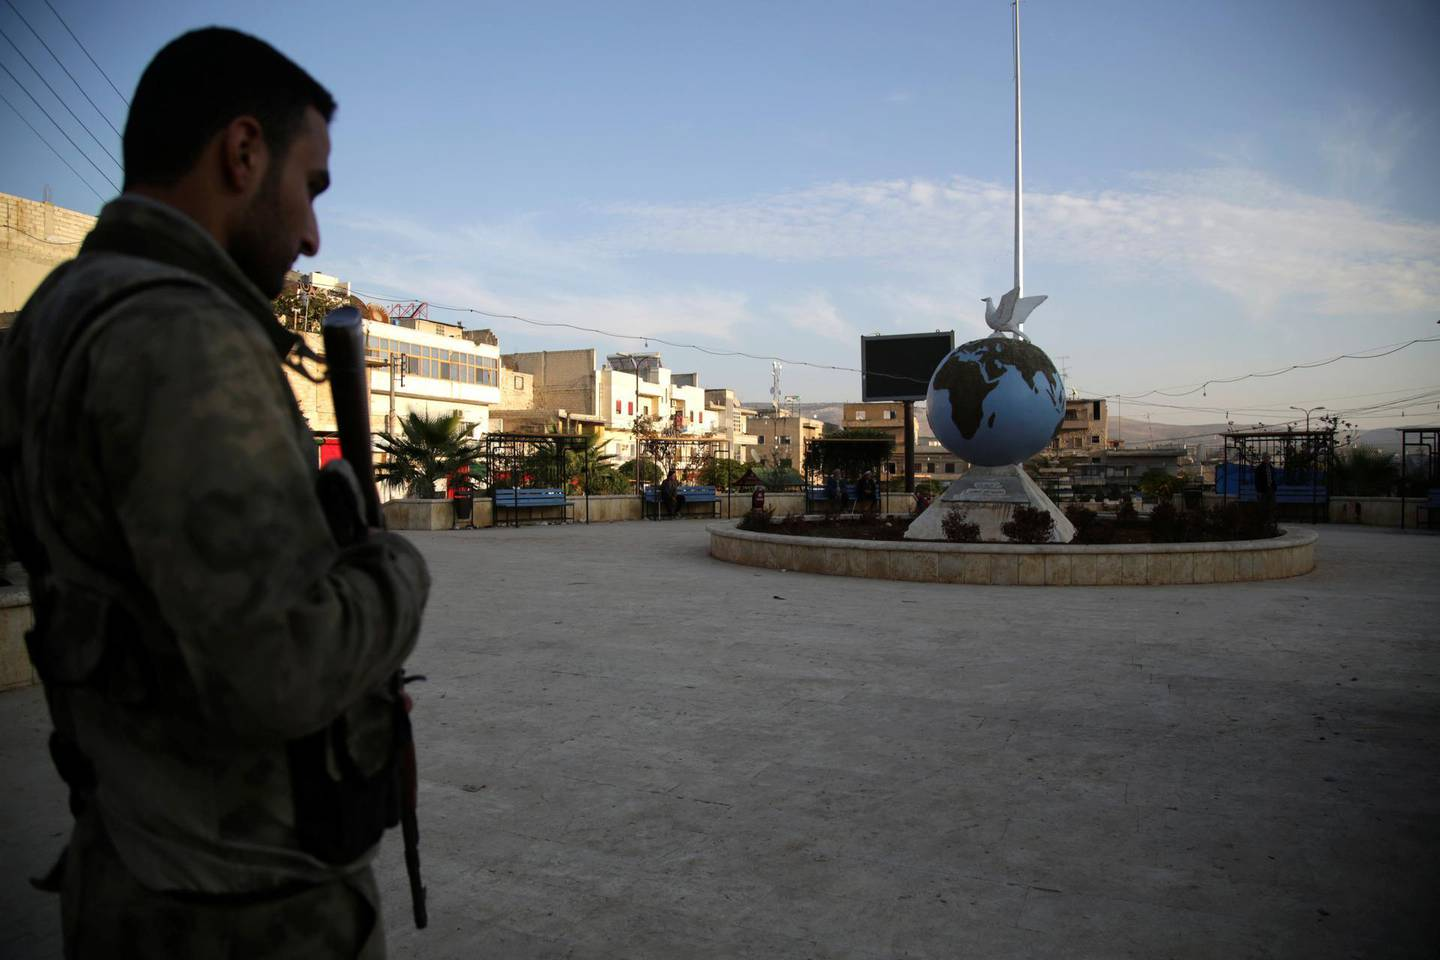 A Turkey-backed Syrian fighter stands guard on November 19, 2018 in the northwestern Syrian city of Afrin. - Clashes on Sunday between Turkish-backed rebel factions vying for influence in the northern Syrian town of Afrin left 25 fighters dead, the Britain-based Syrian Observatory for Human Rights said  said. (Photo by Bakr ALKASEM / AFP)